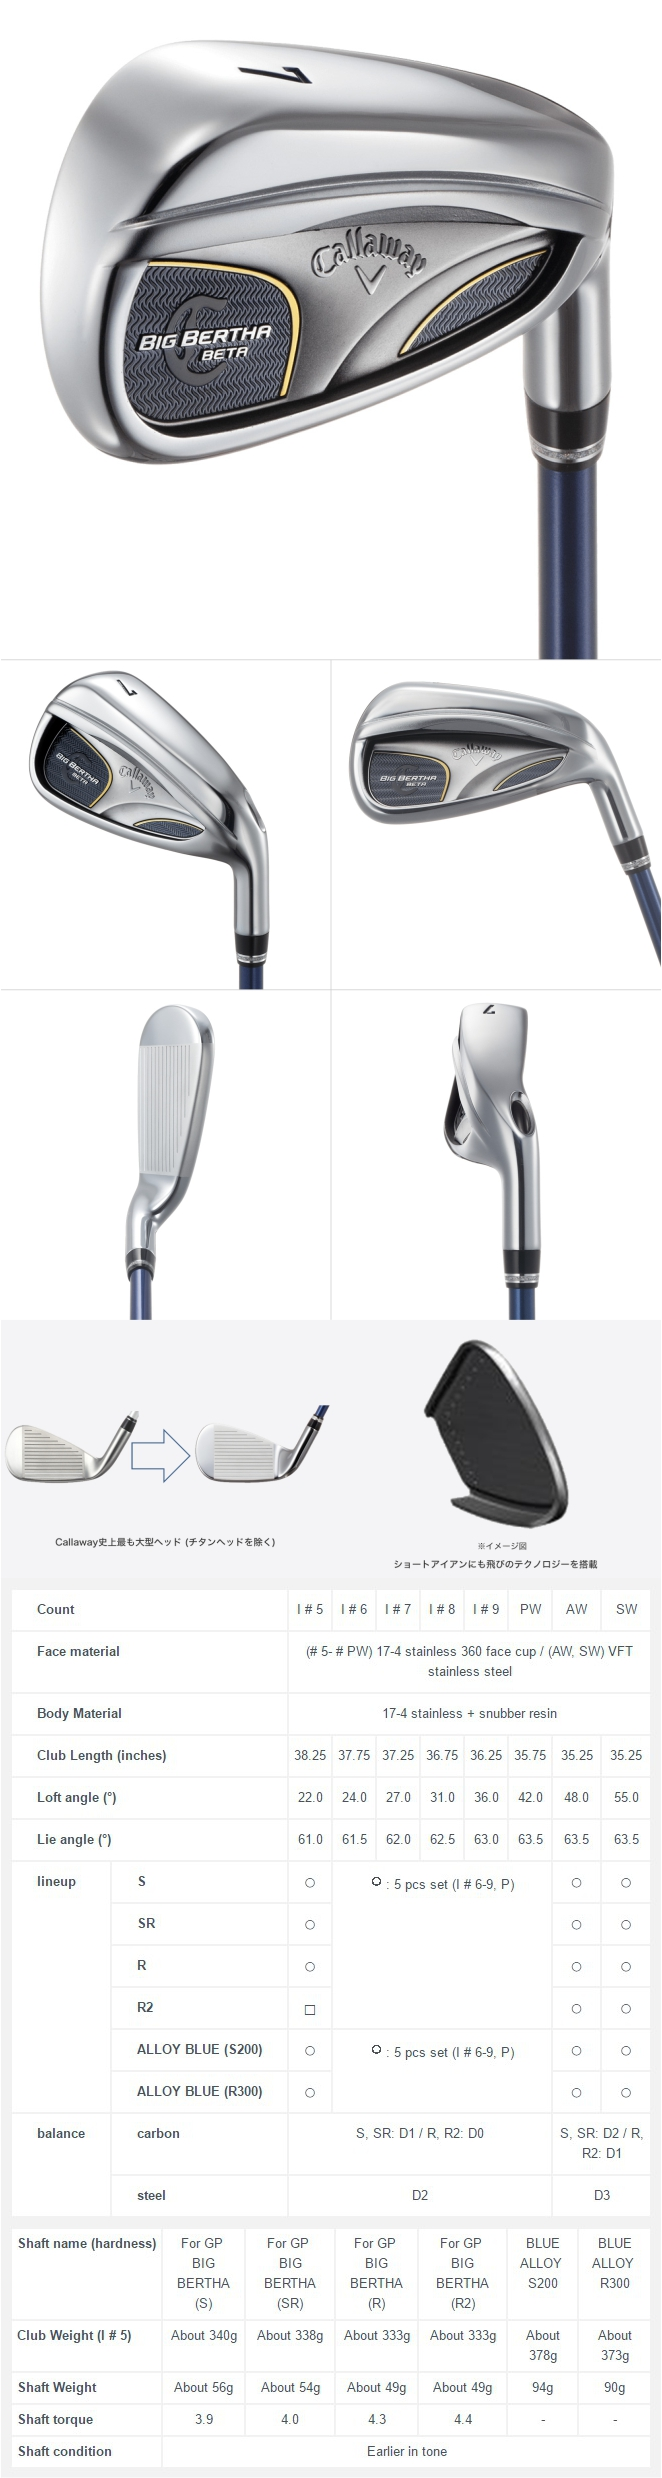 Callaway Japan 2016 Big Bertha Beta Iron